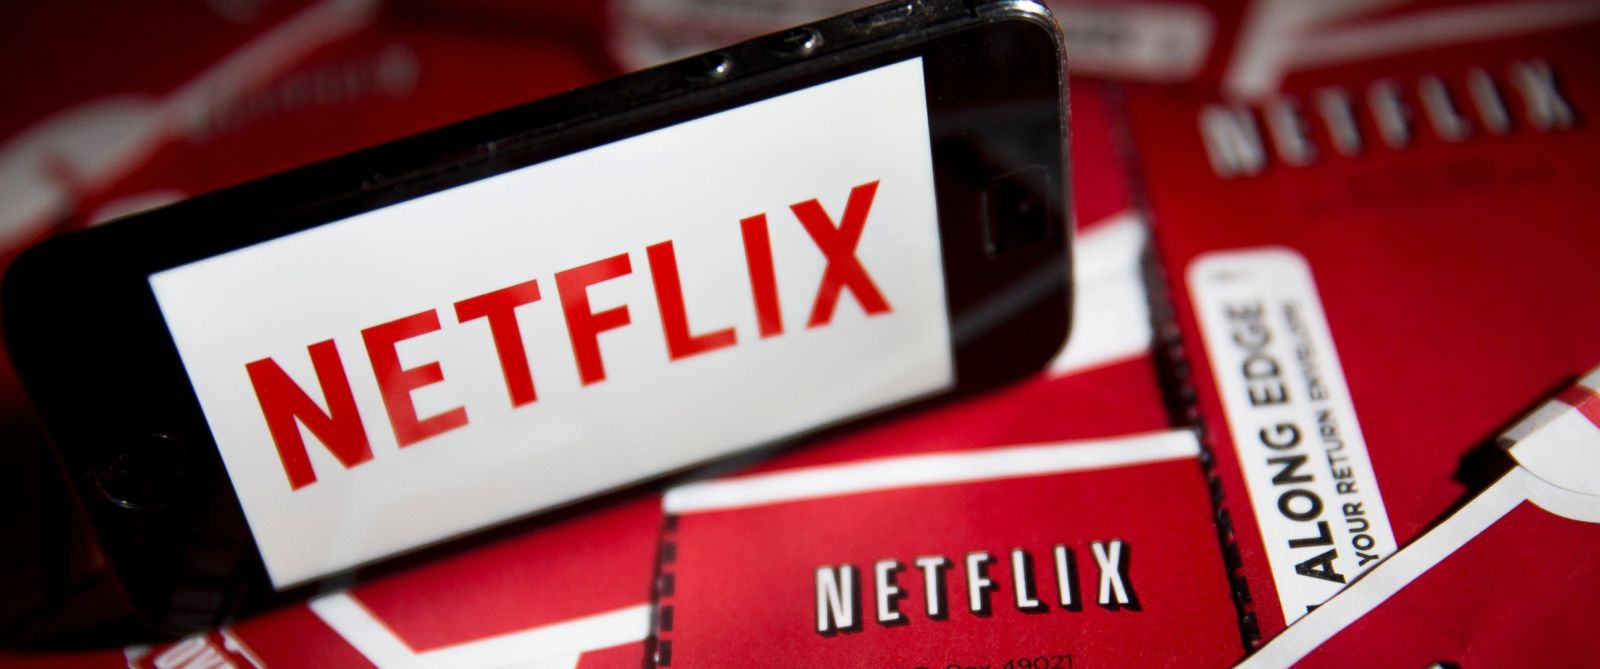 PHOTO: The Netflix Inc. logo is displayed on an Apple Inc. iPhone 5s surrounded by DVD mailers in this arranged photograph in Washington on April 14, 2015.